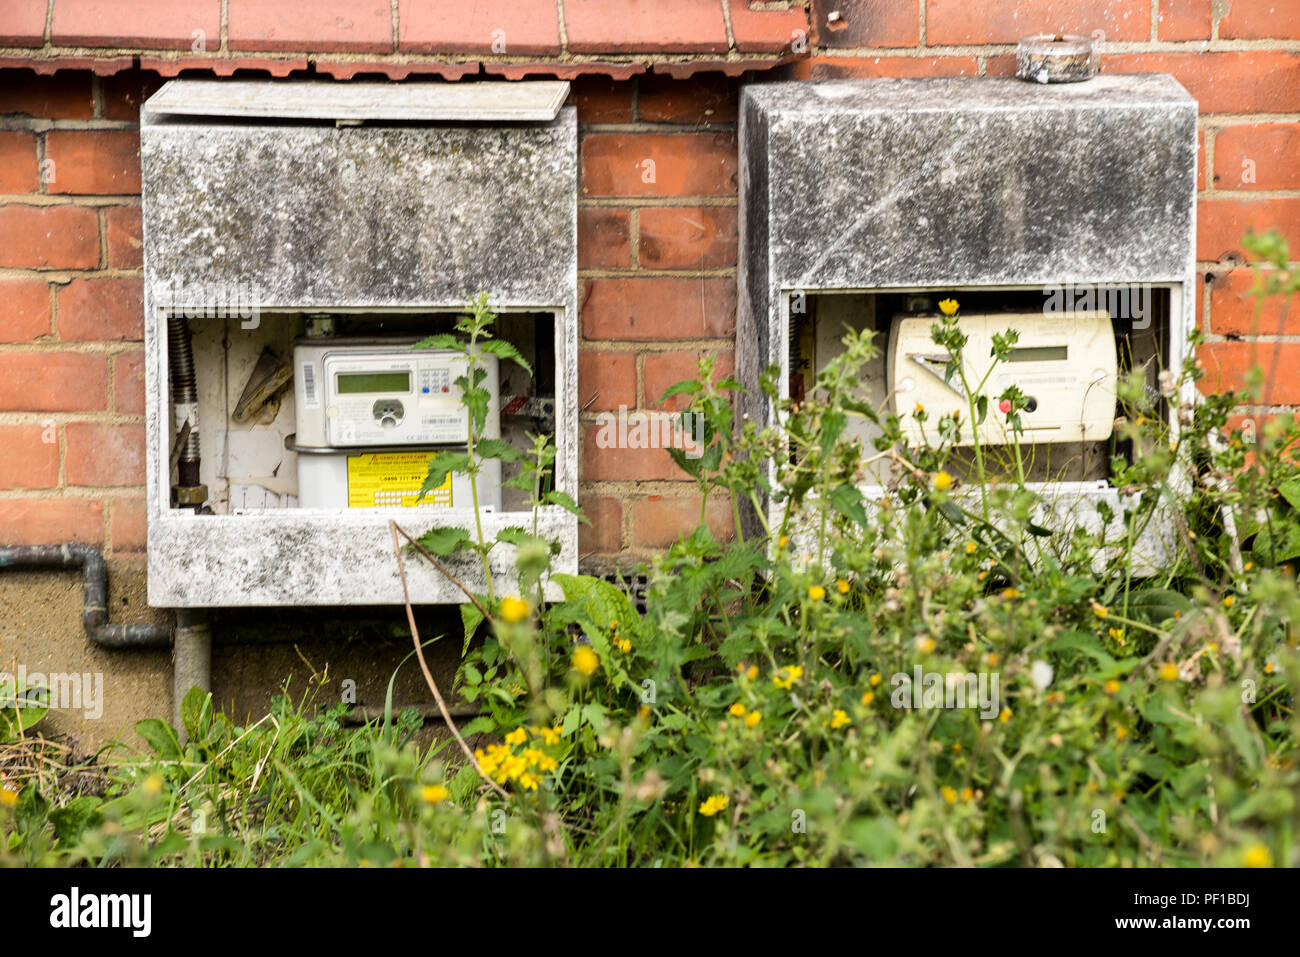 Damaged and decrepit gas and electric meters. Overgrown garden. Weeds. House. Property - Stock Image